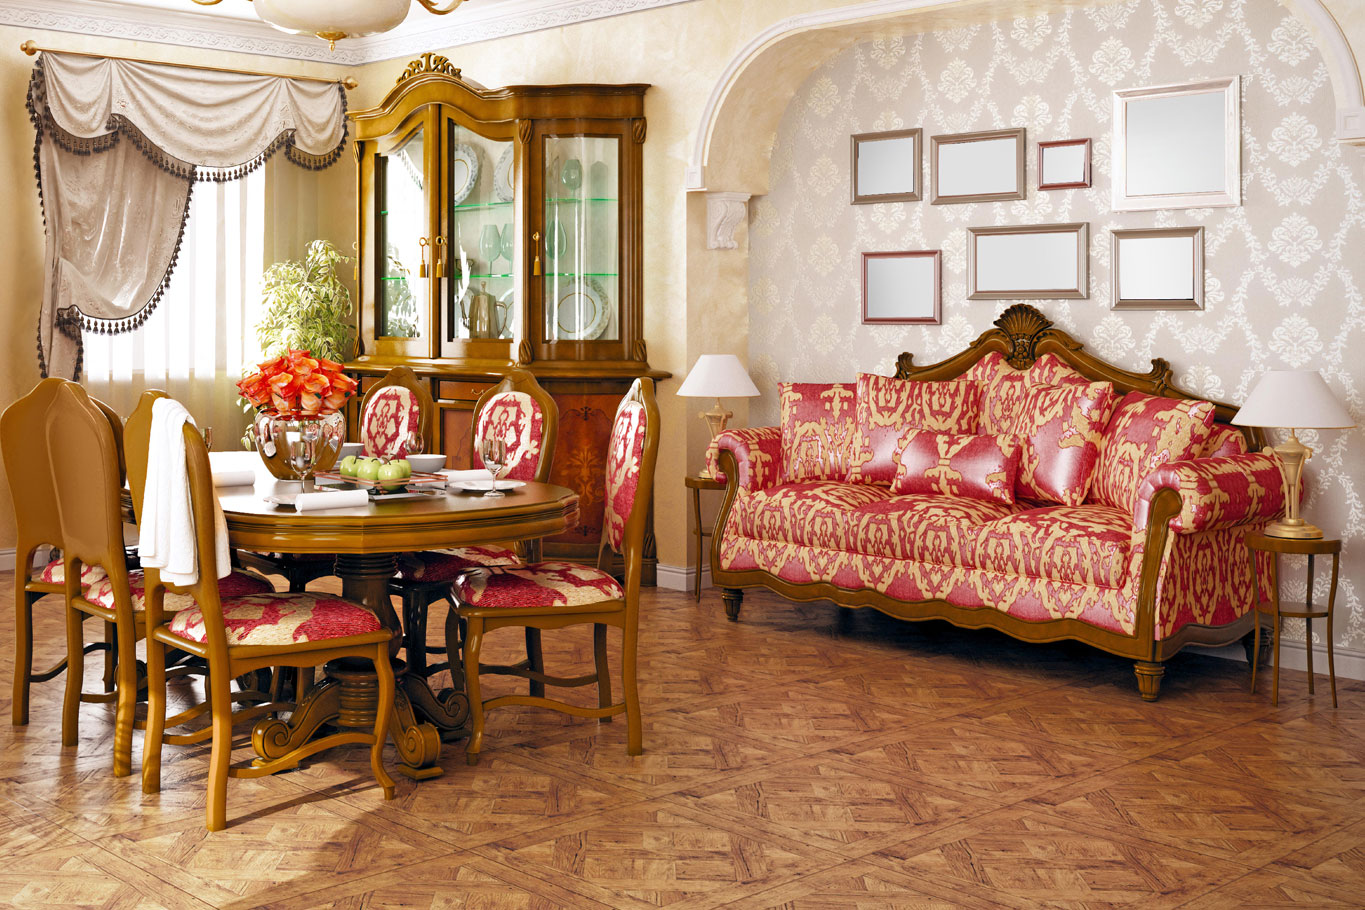 Oriental style furniture